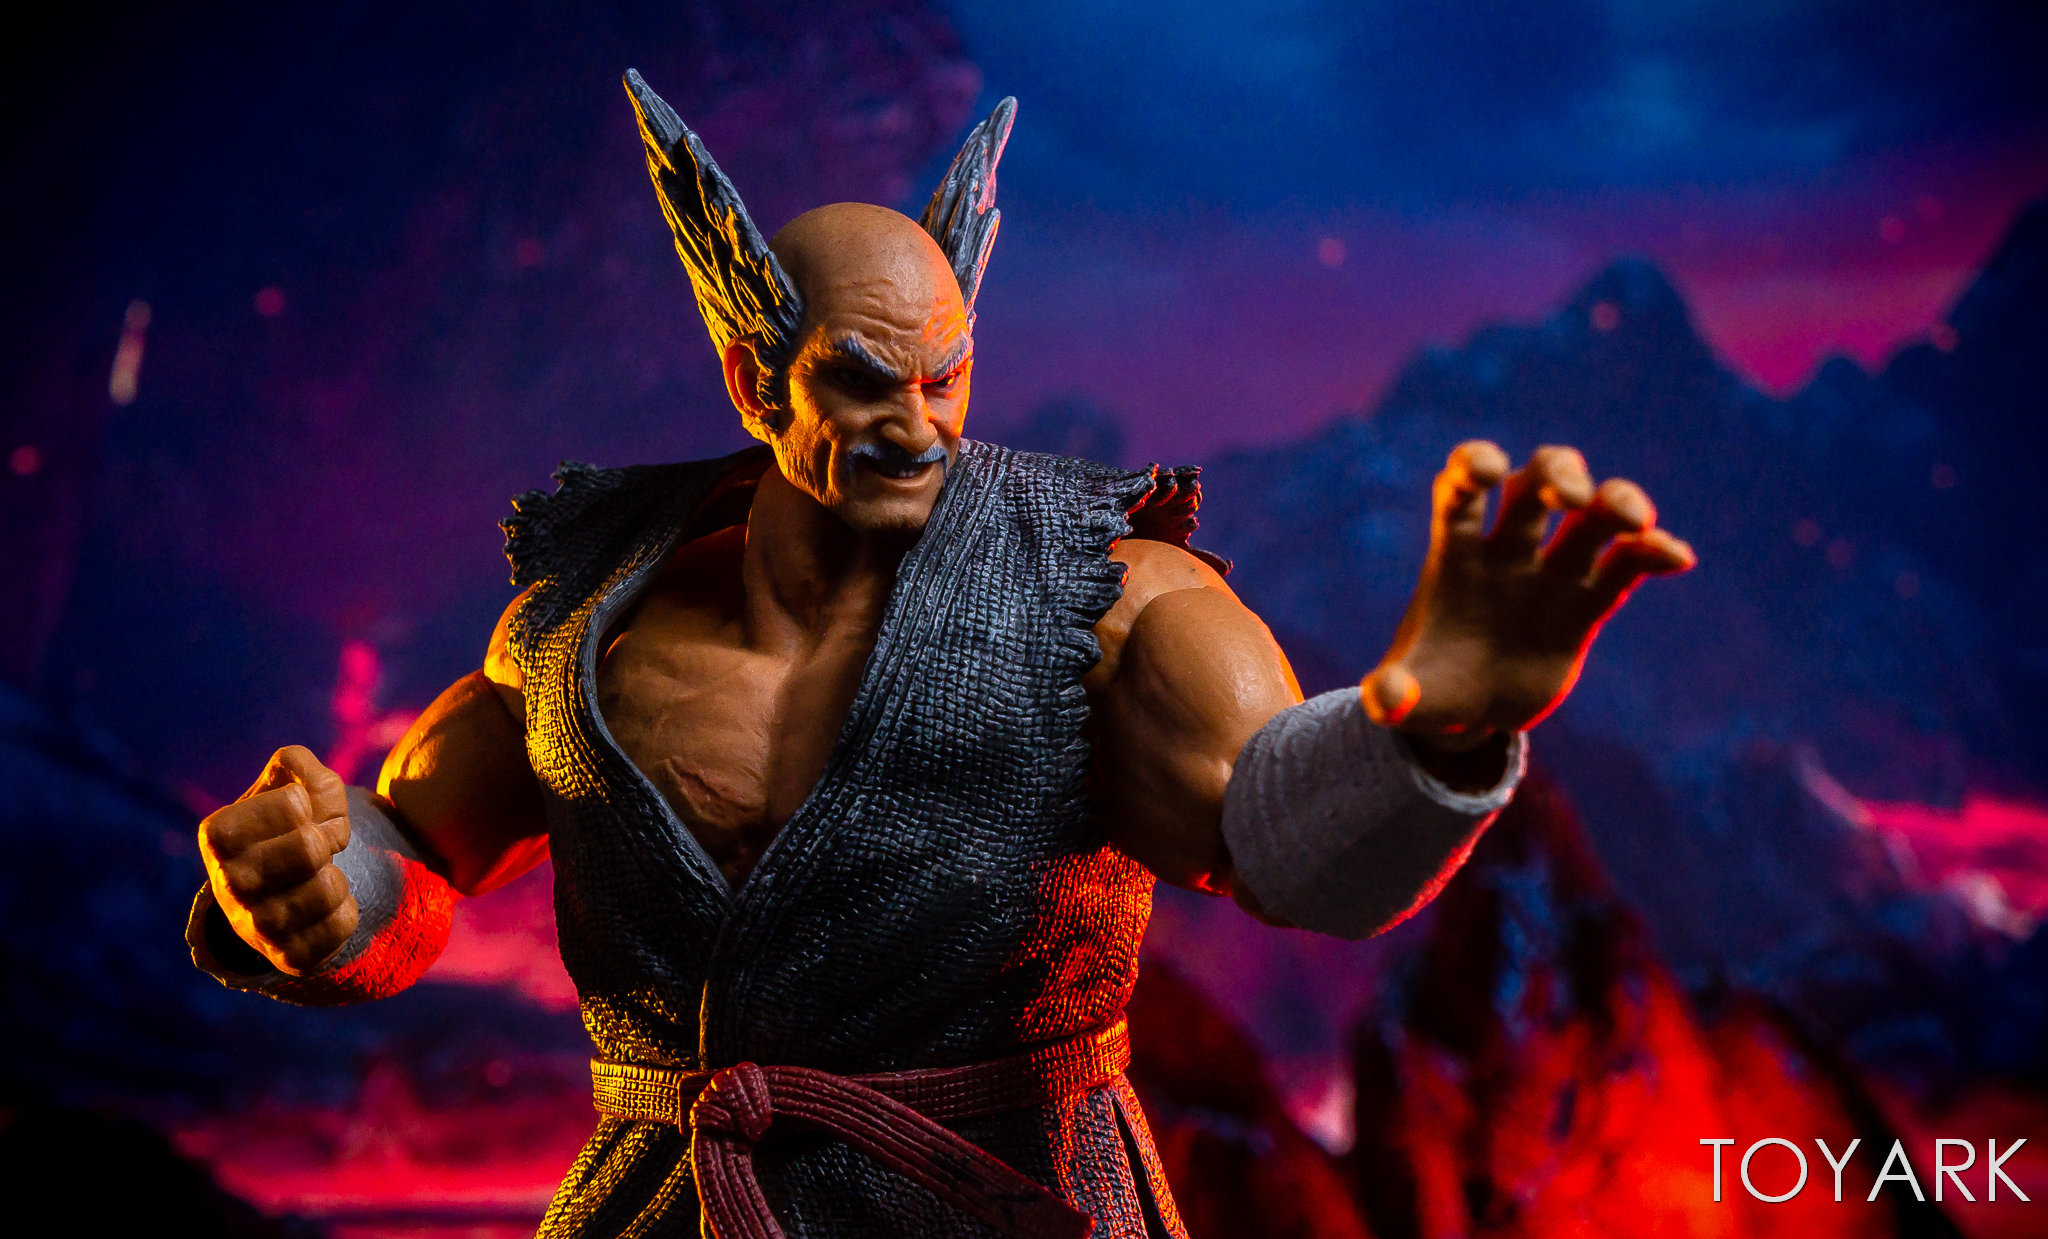 https://news.toyark.com/wp-content/uploads/sites/4/2018/05/Storm-Heihachi-Figure-041.jpg